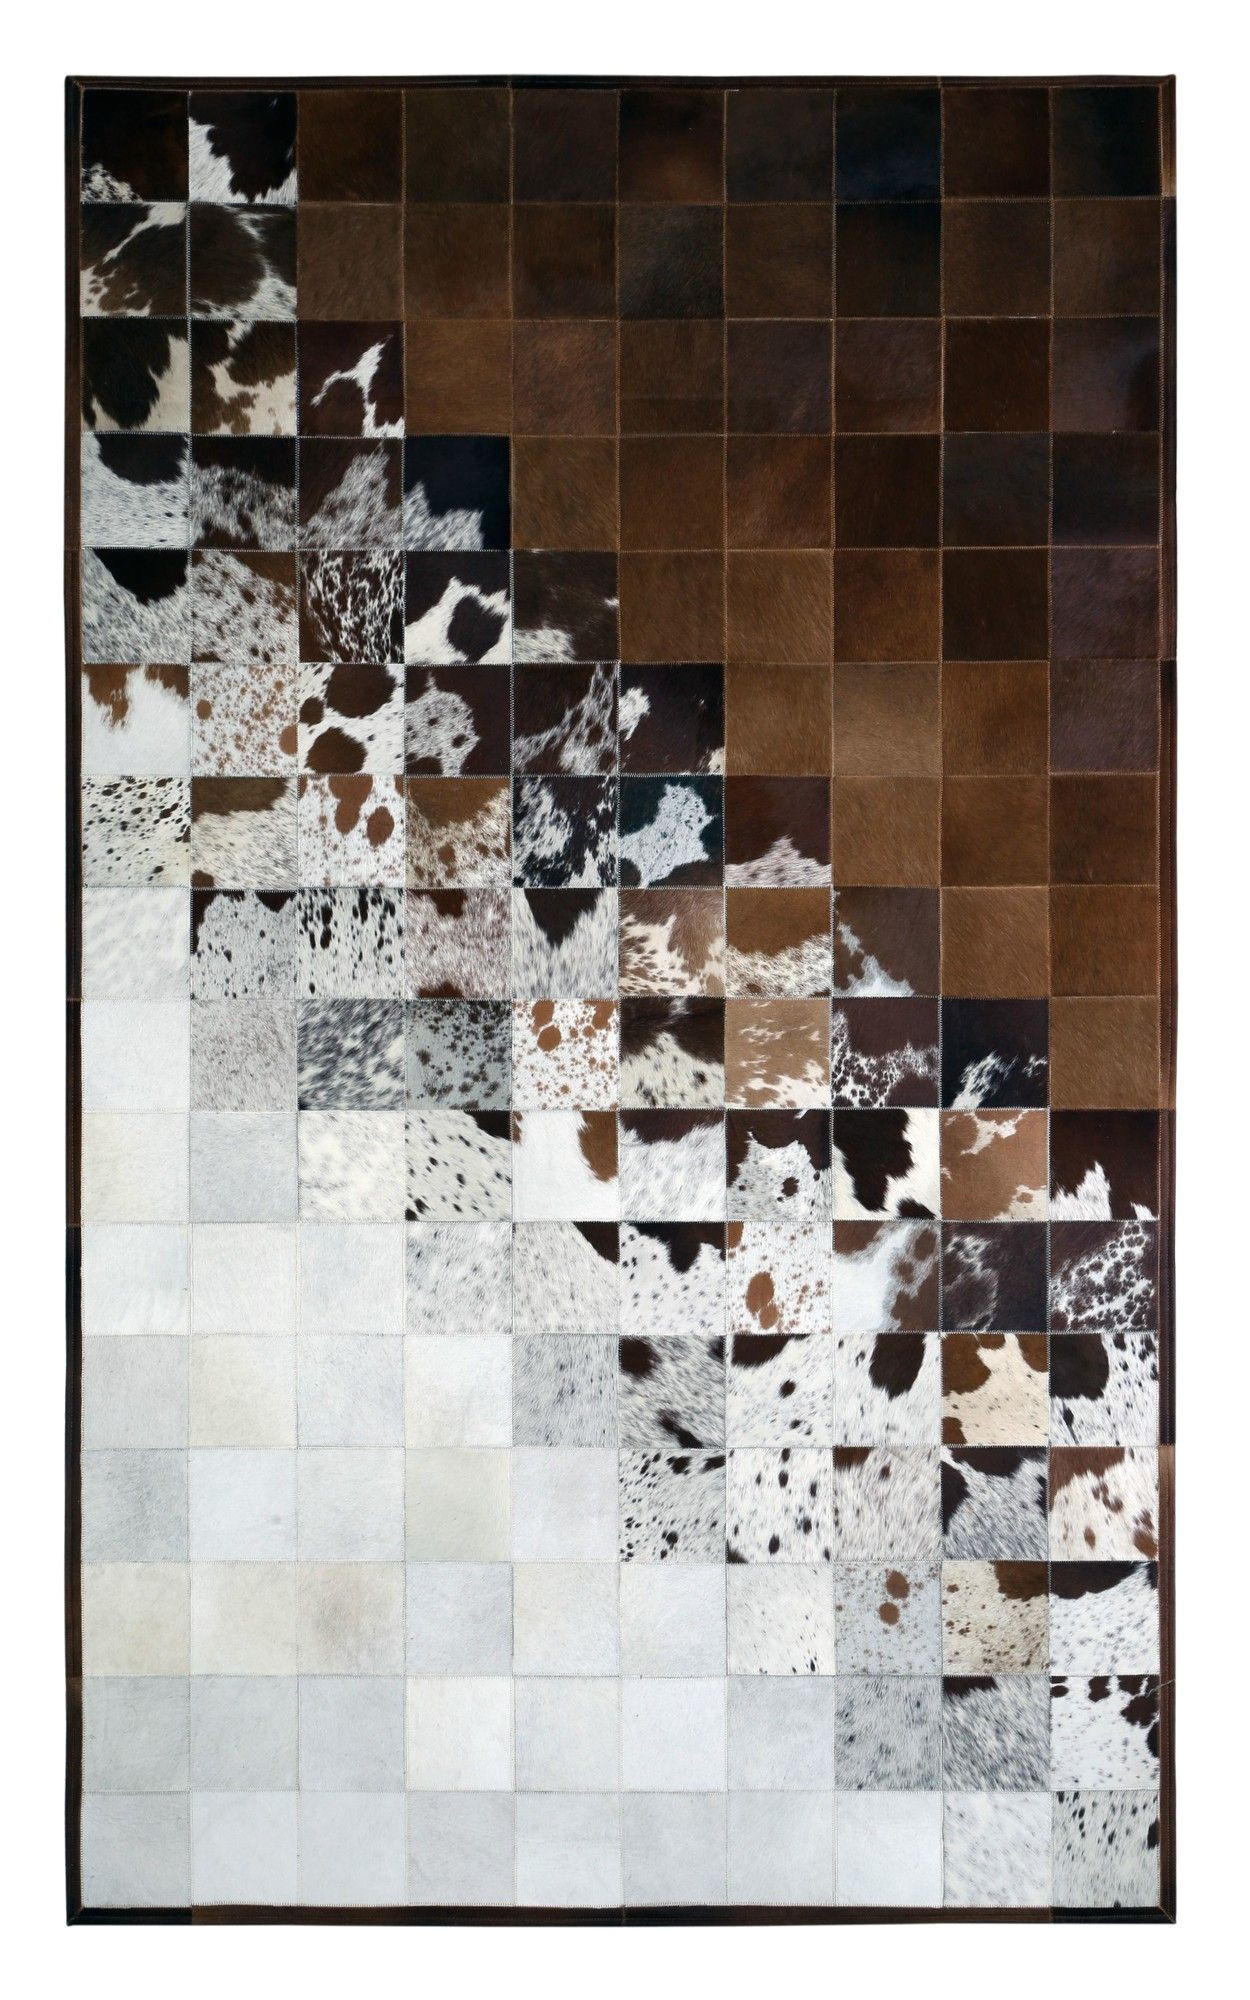 Where to Buy Cowhide Rugs Near Me Prescott Brown Natural area Rug Products Rugs area Rugs Rugs